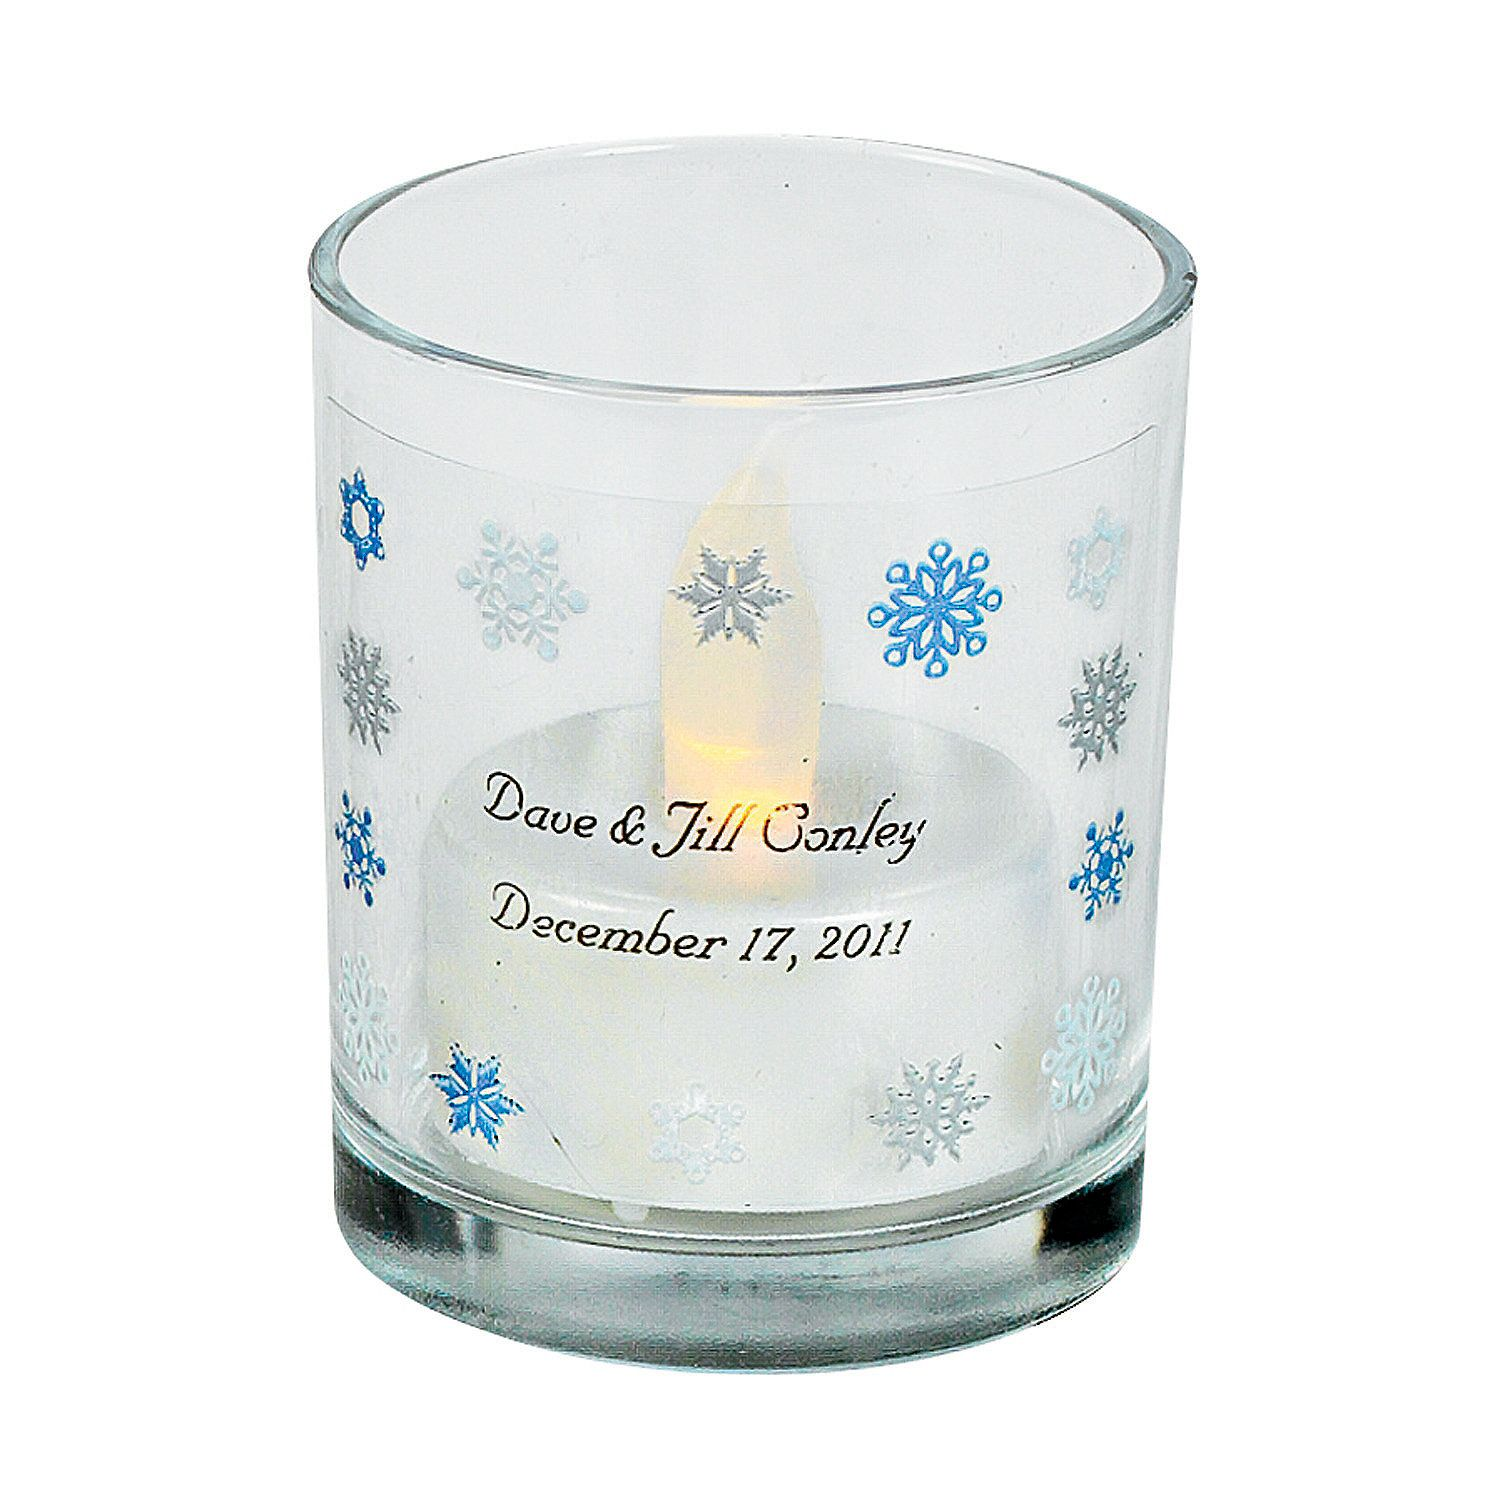 Personalized Snowflake Votive Holders - OrientalTrading.com ...